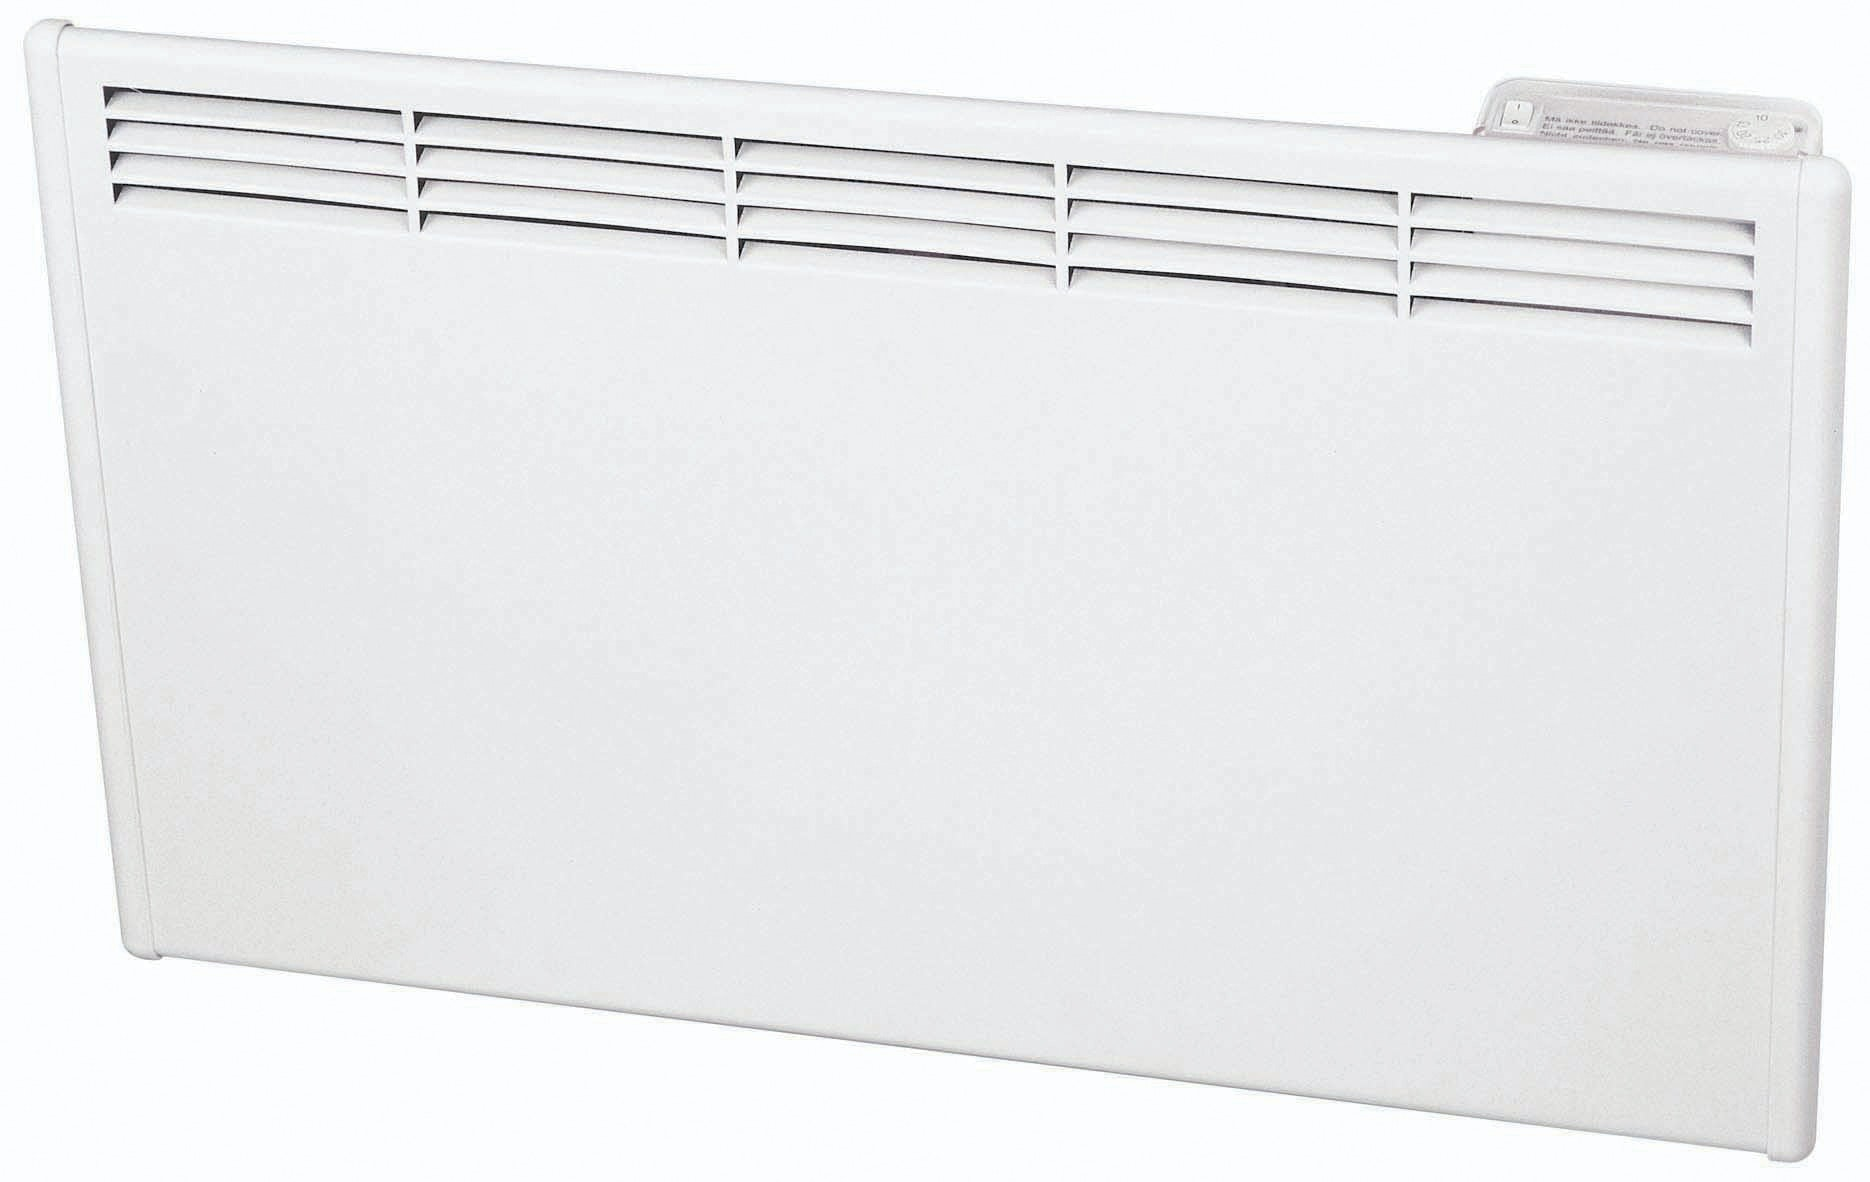 El-element GKP IP24 400W 400V